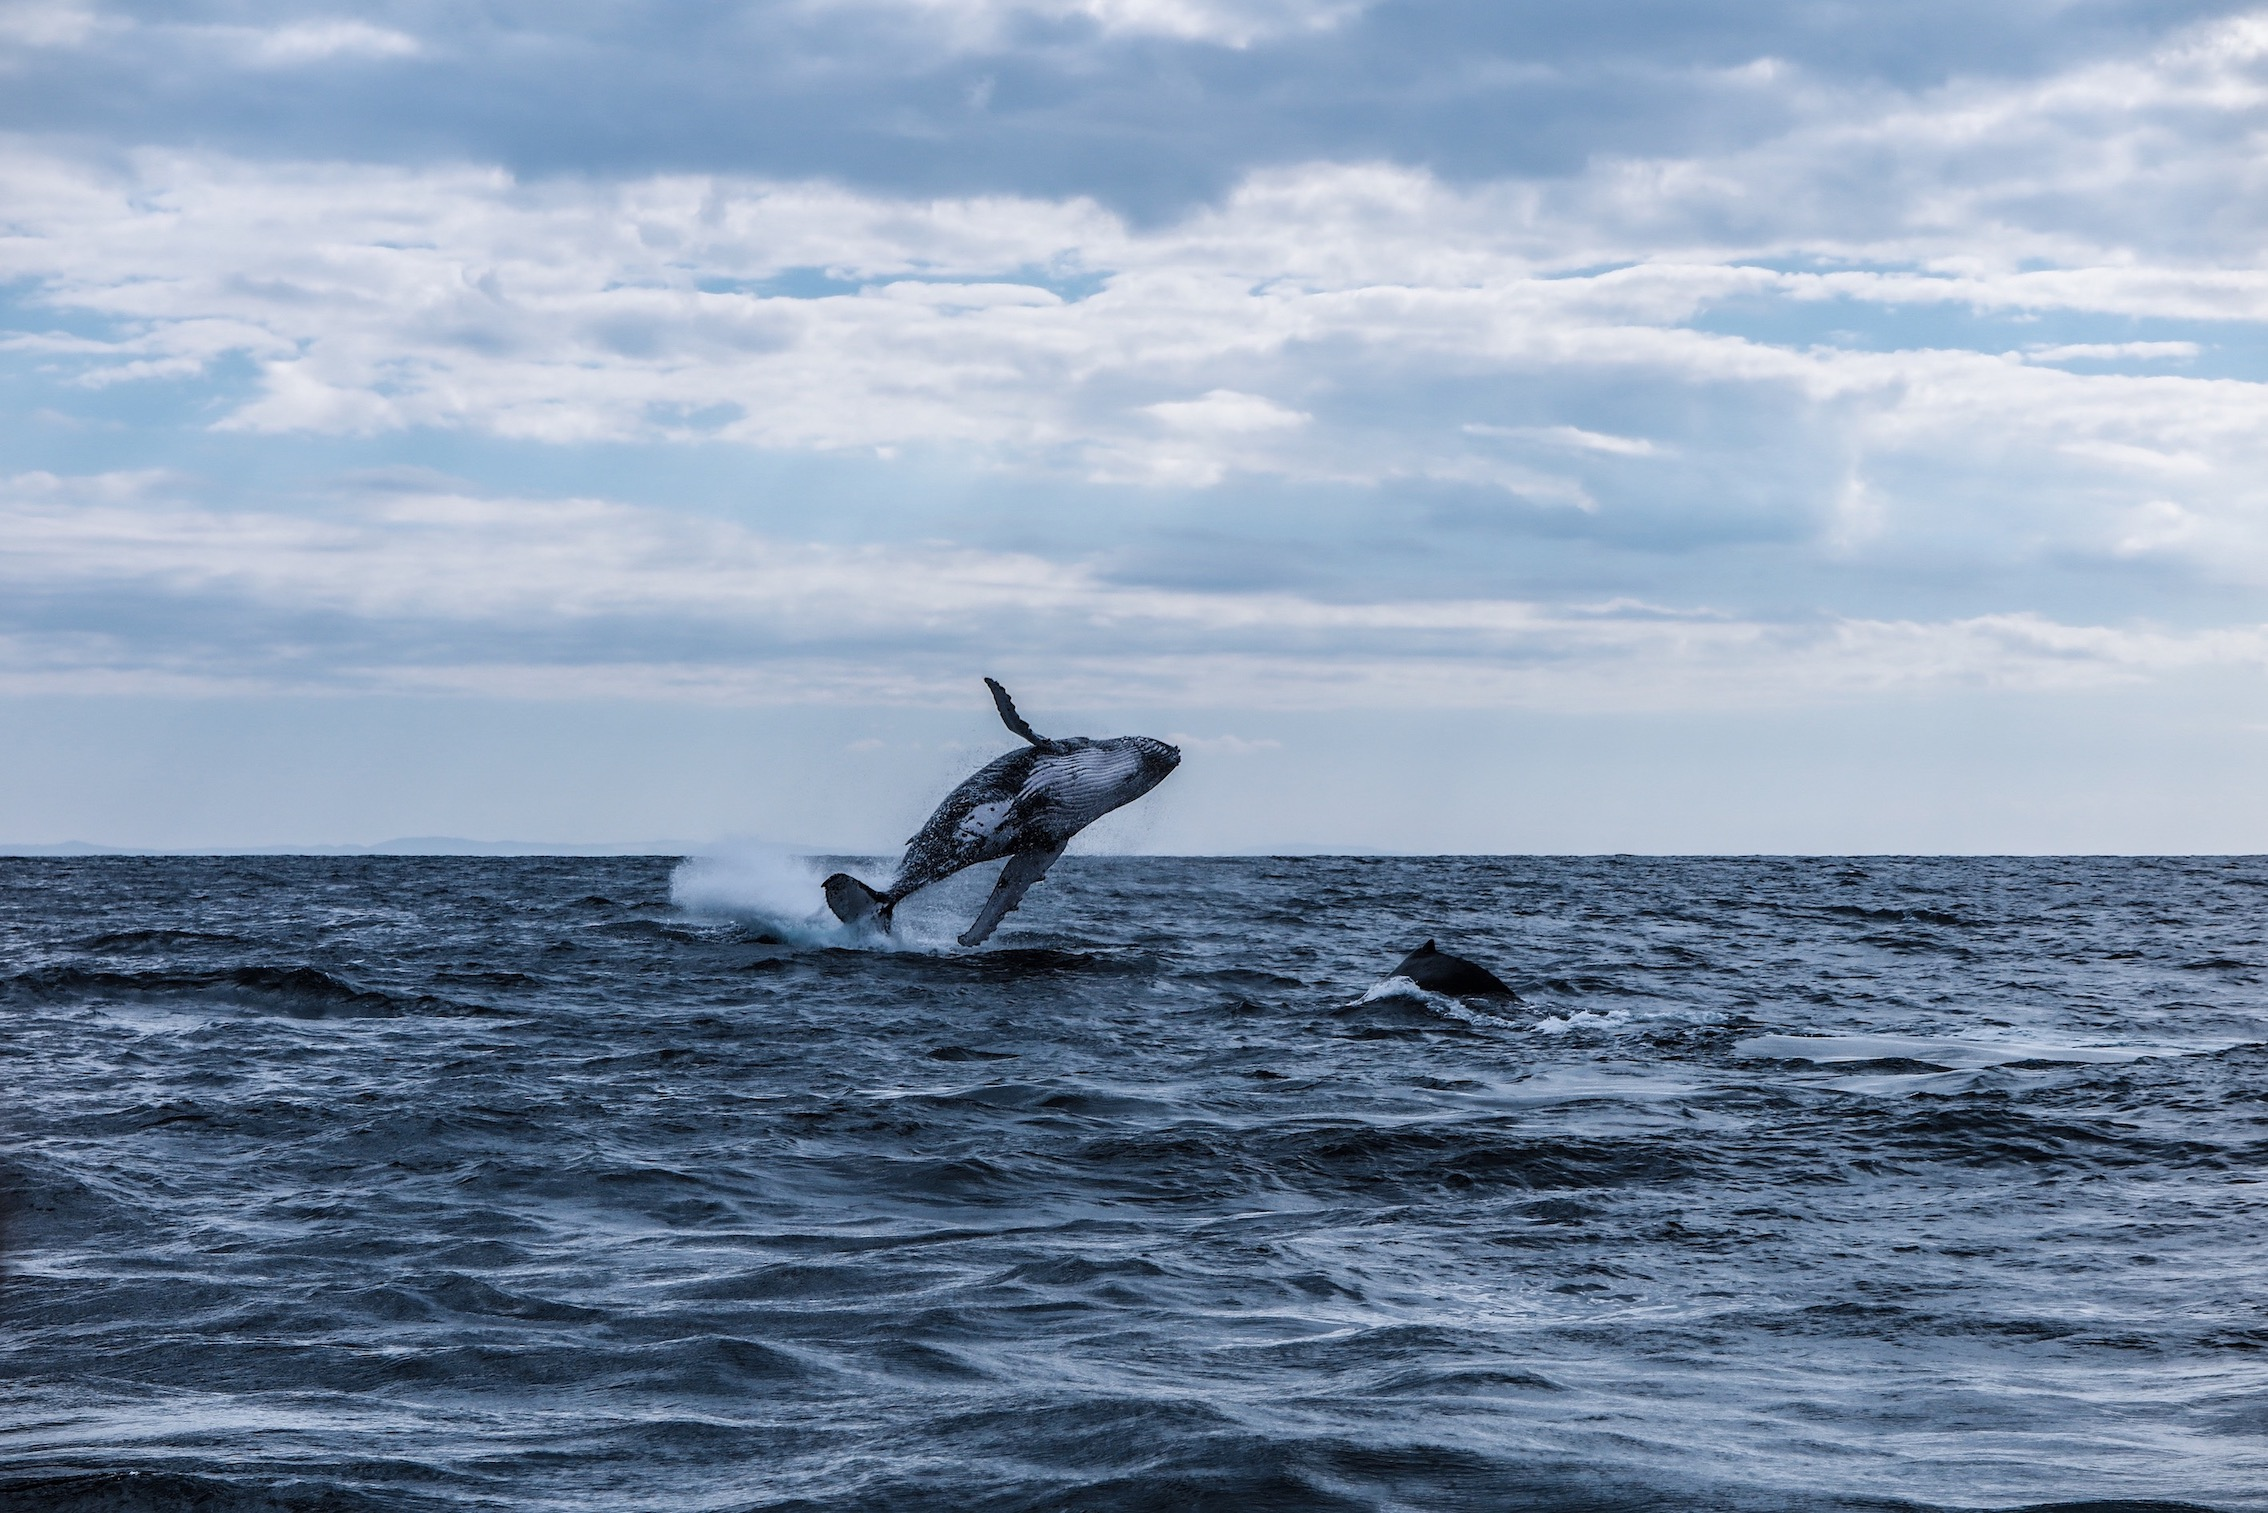 The Humpback Whale East Coast Migration